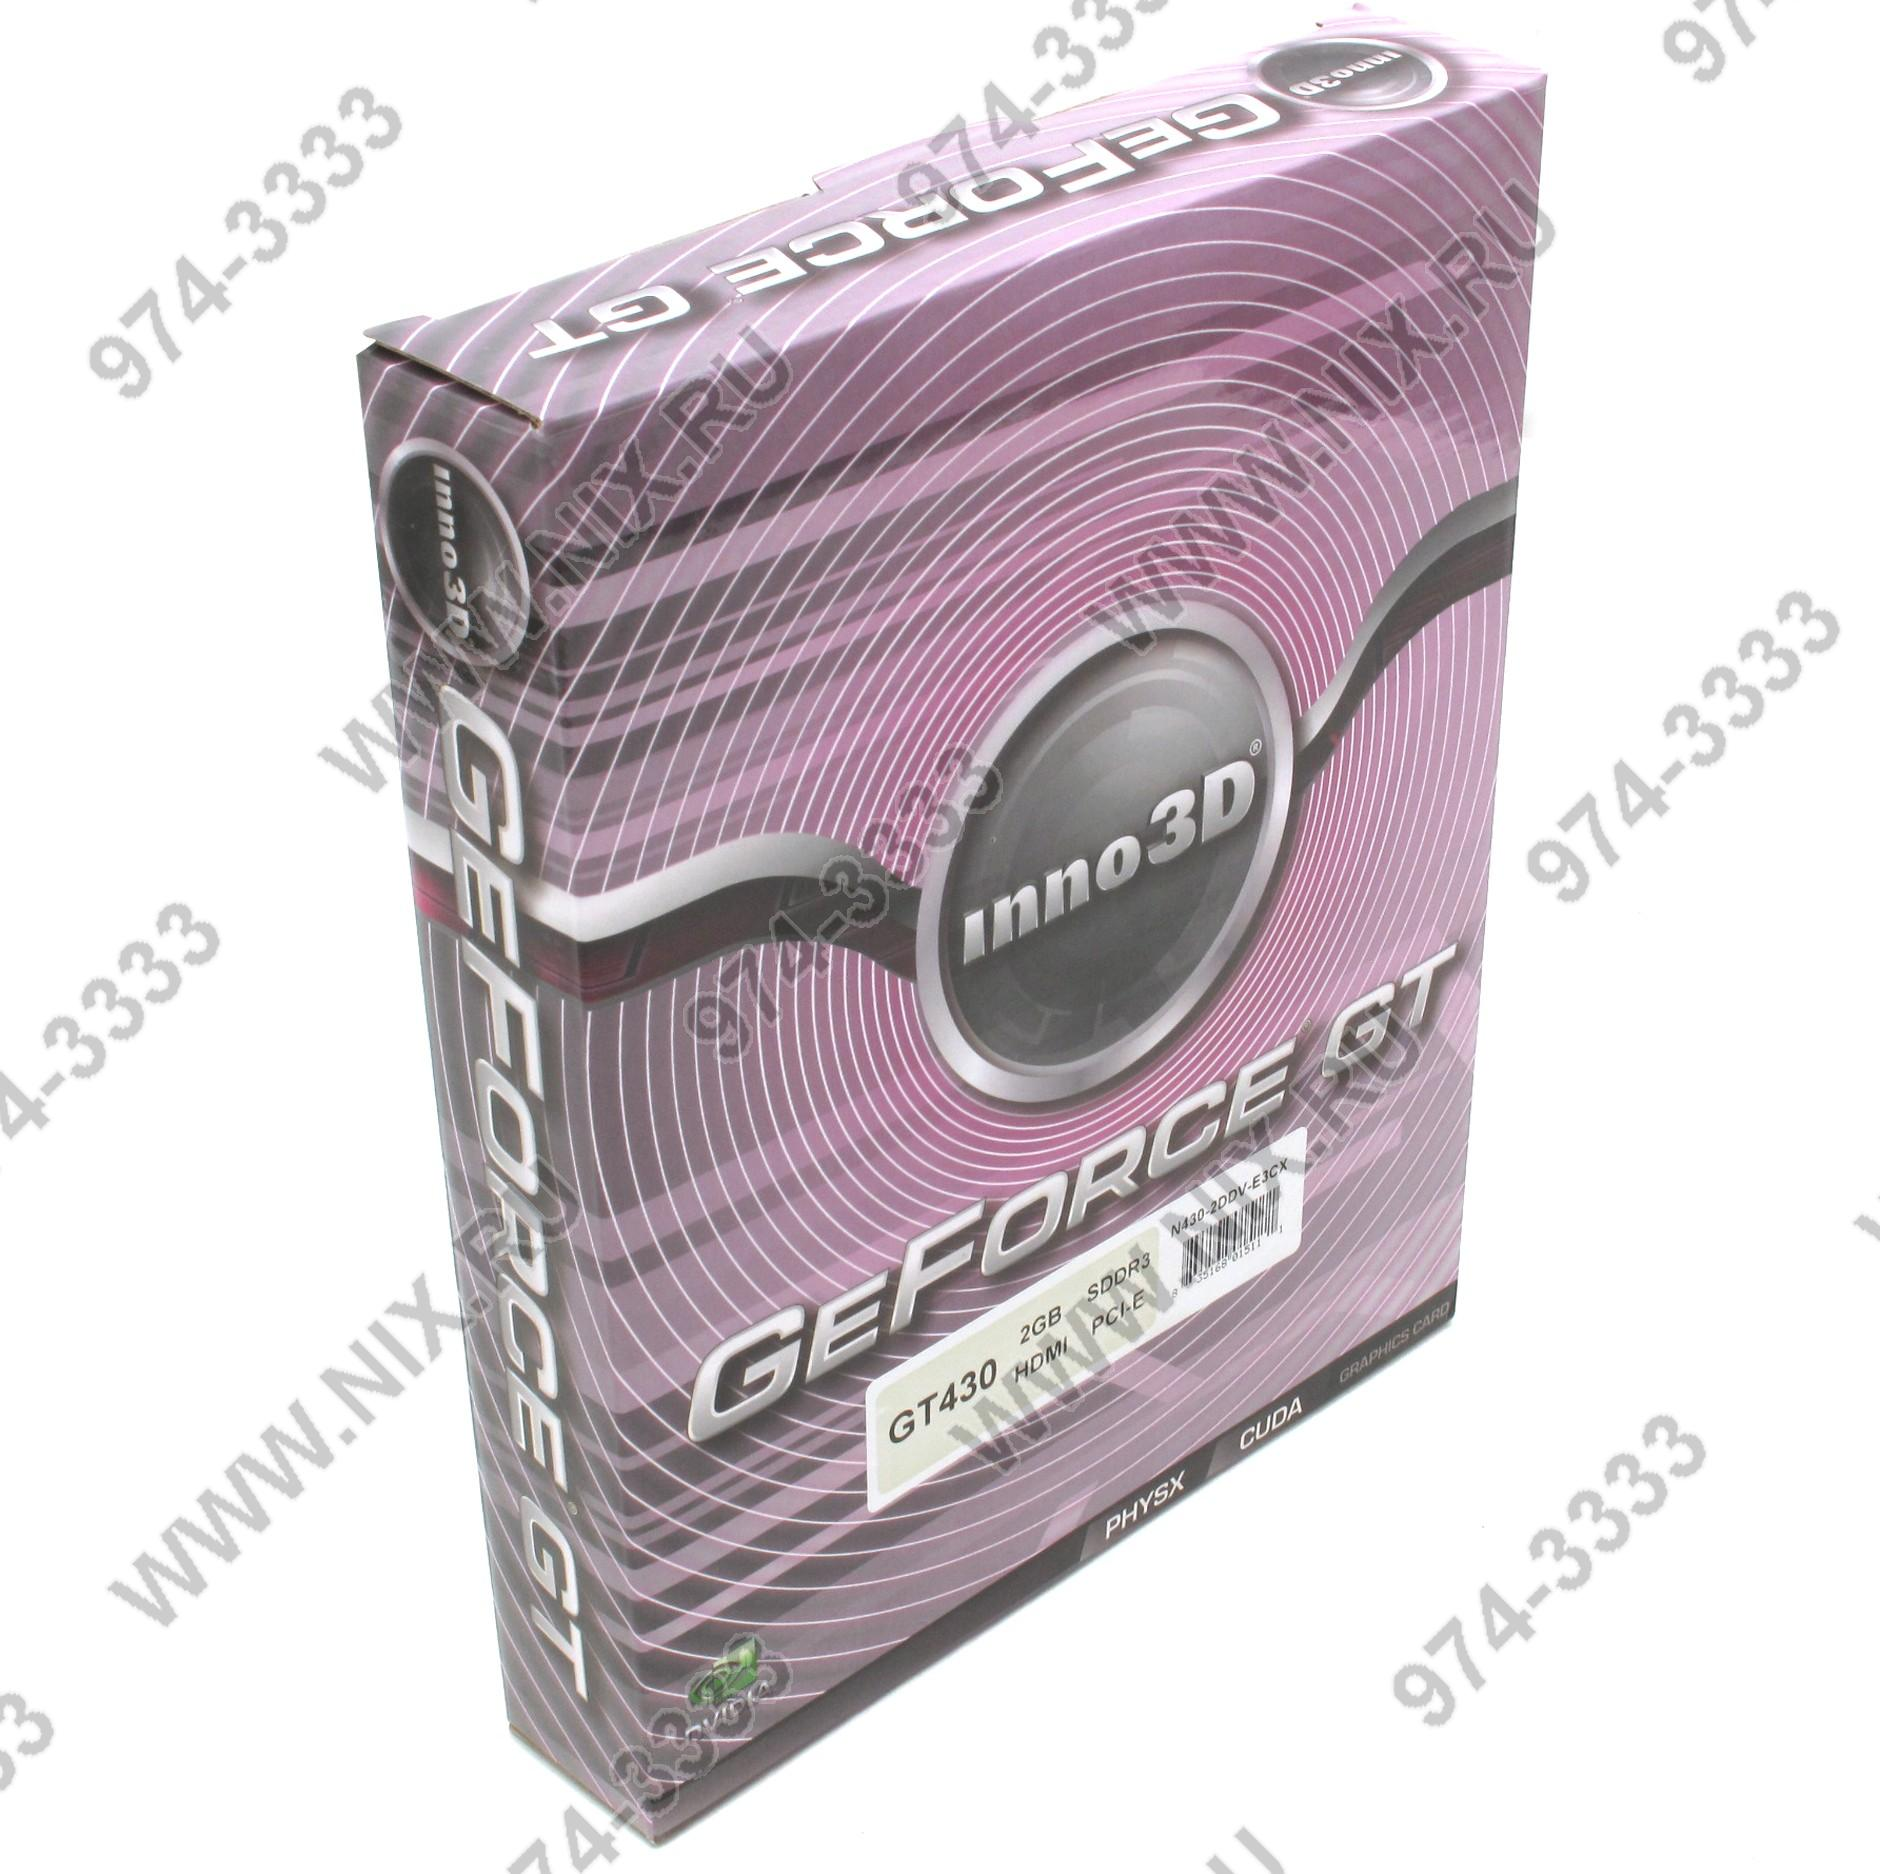 Inno3d Gt 430 2Gb Driver Download